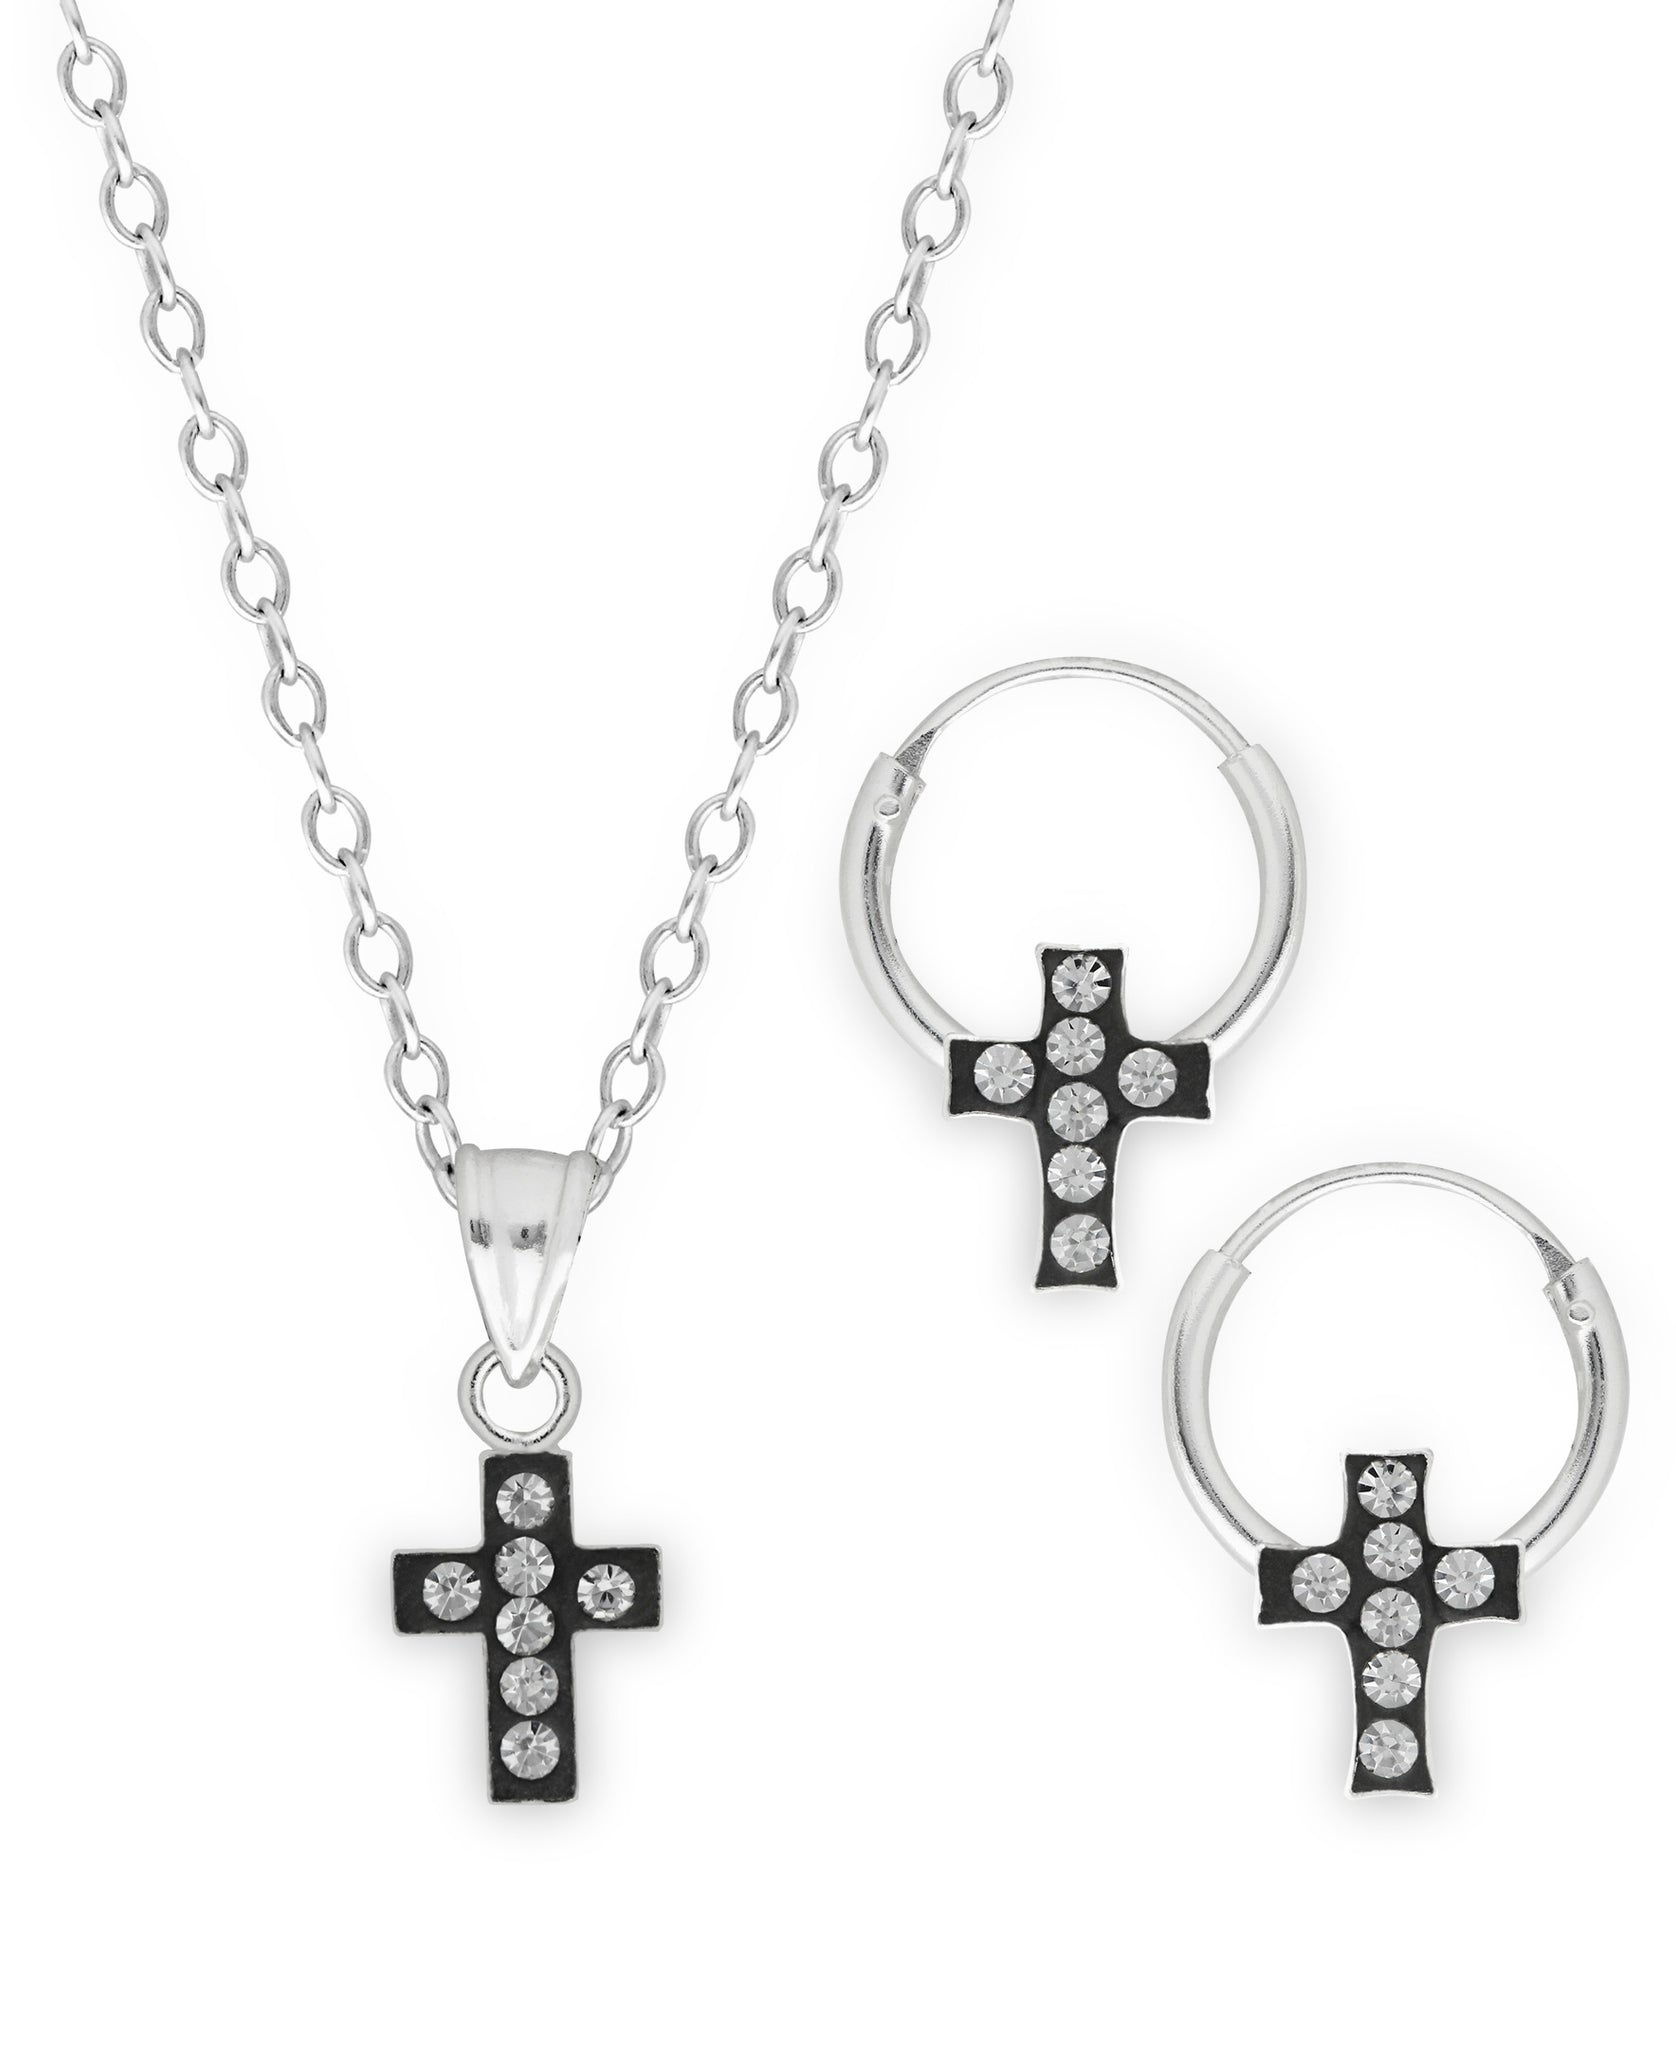 Children's Sterling Silver Crystal Cross Pendant Necklace & Hoop Earrings Set - Rhona Sutton Jewellery